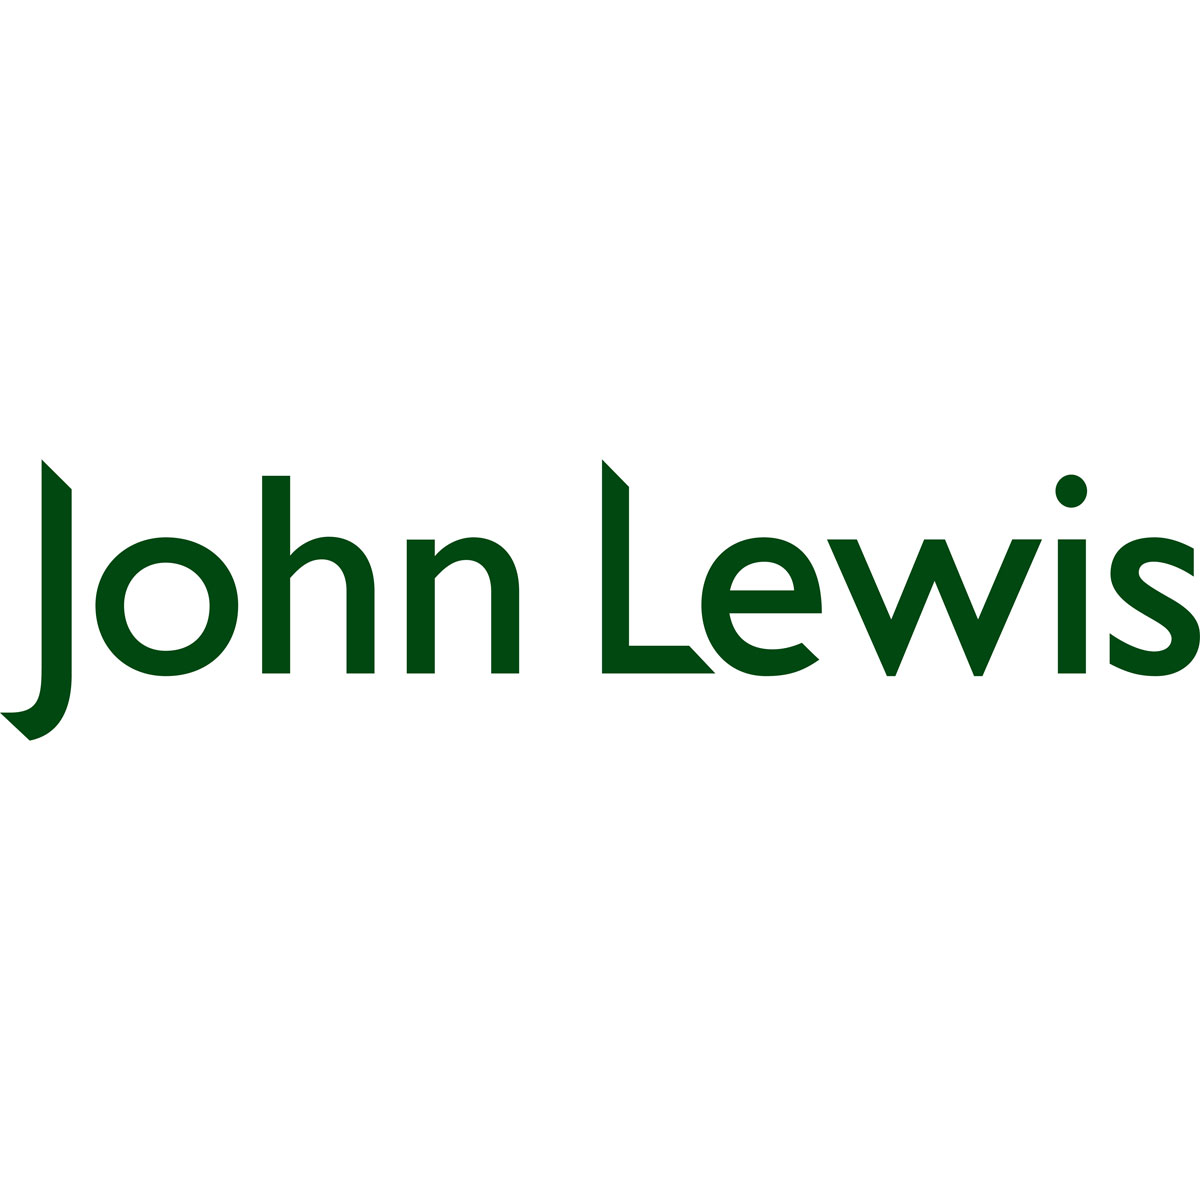 A TEXTILES firm that manufactures soft furnishings for John Lewis has announced plans to expand in Darwen